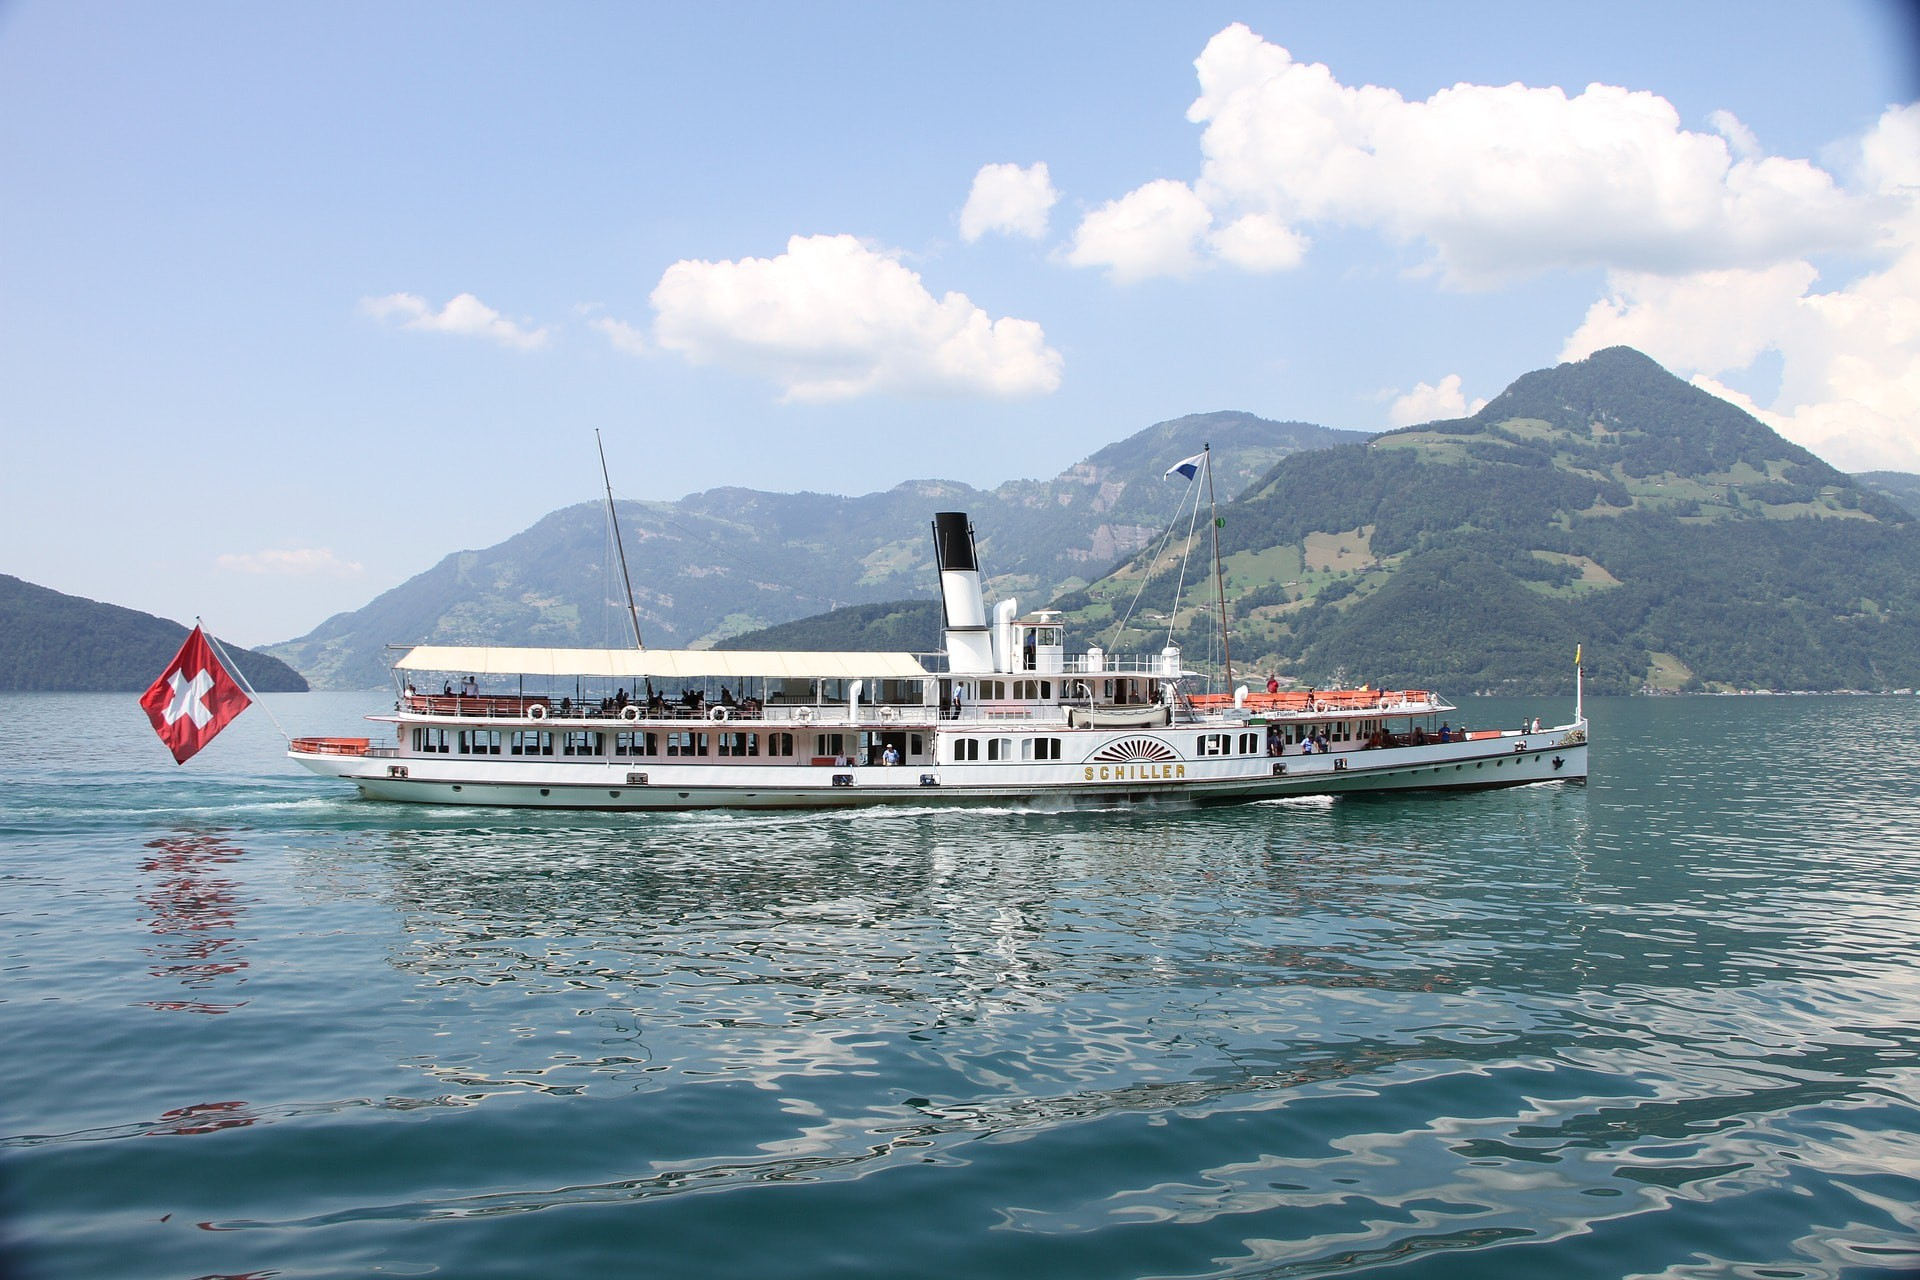 ferry boat in water travelling, mountains